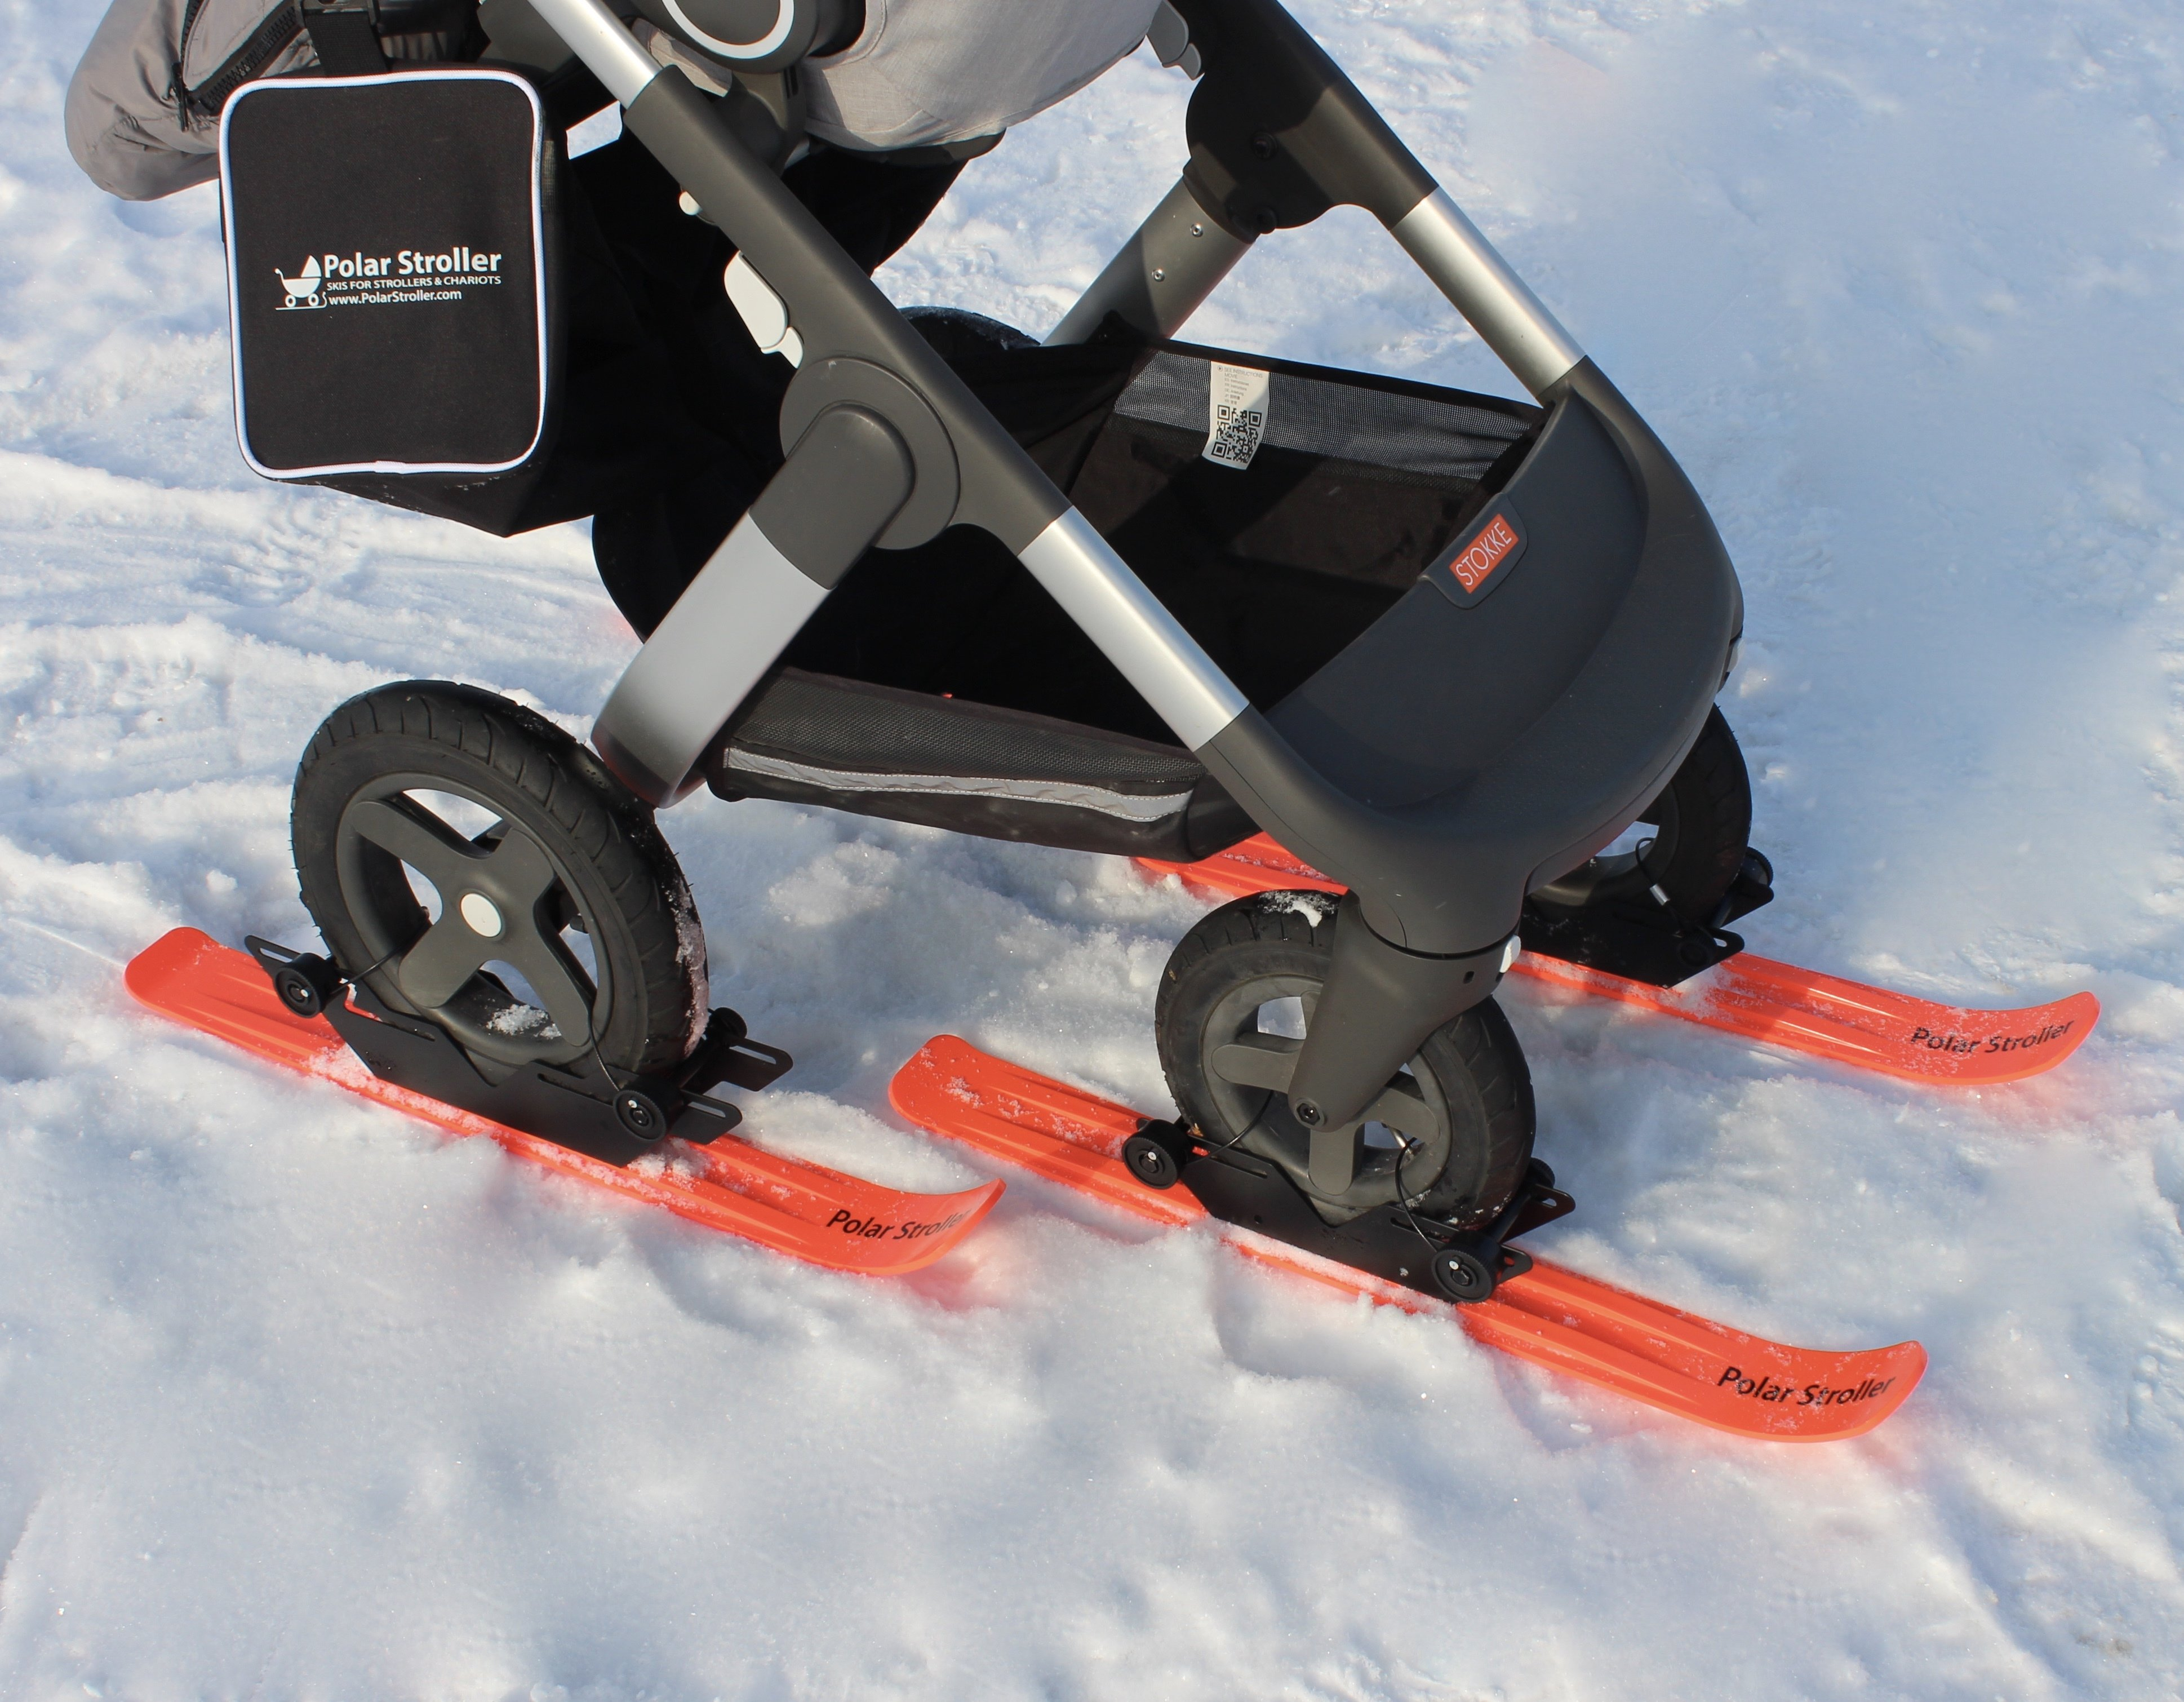 RX4 - 4 Wheel Polar Stroller Ski Set 00013